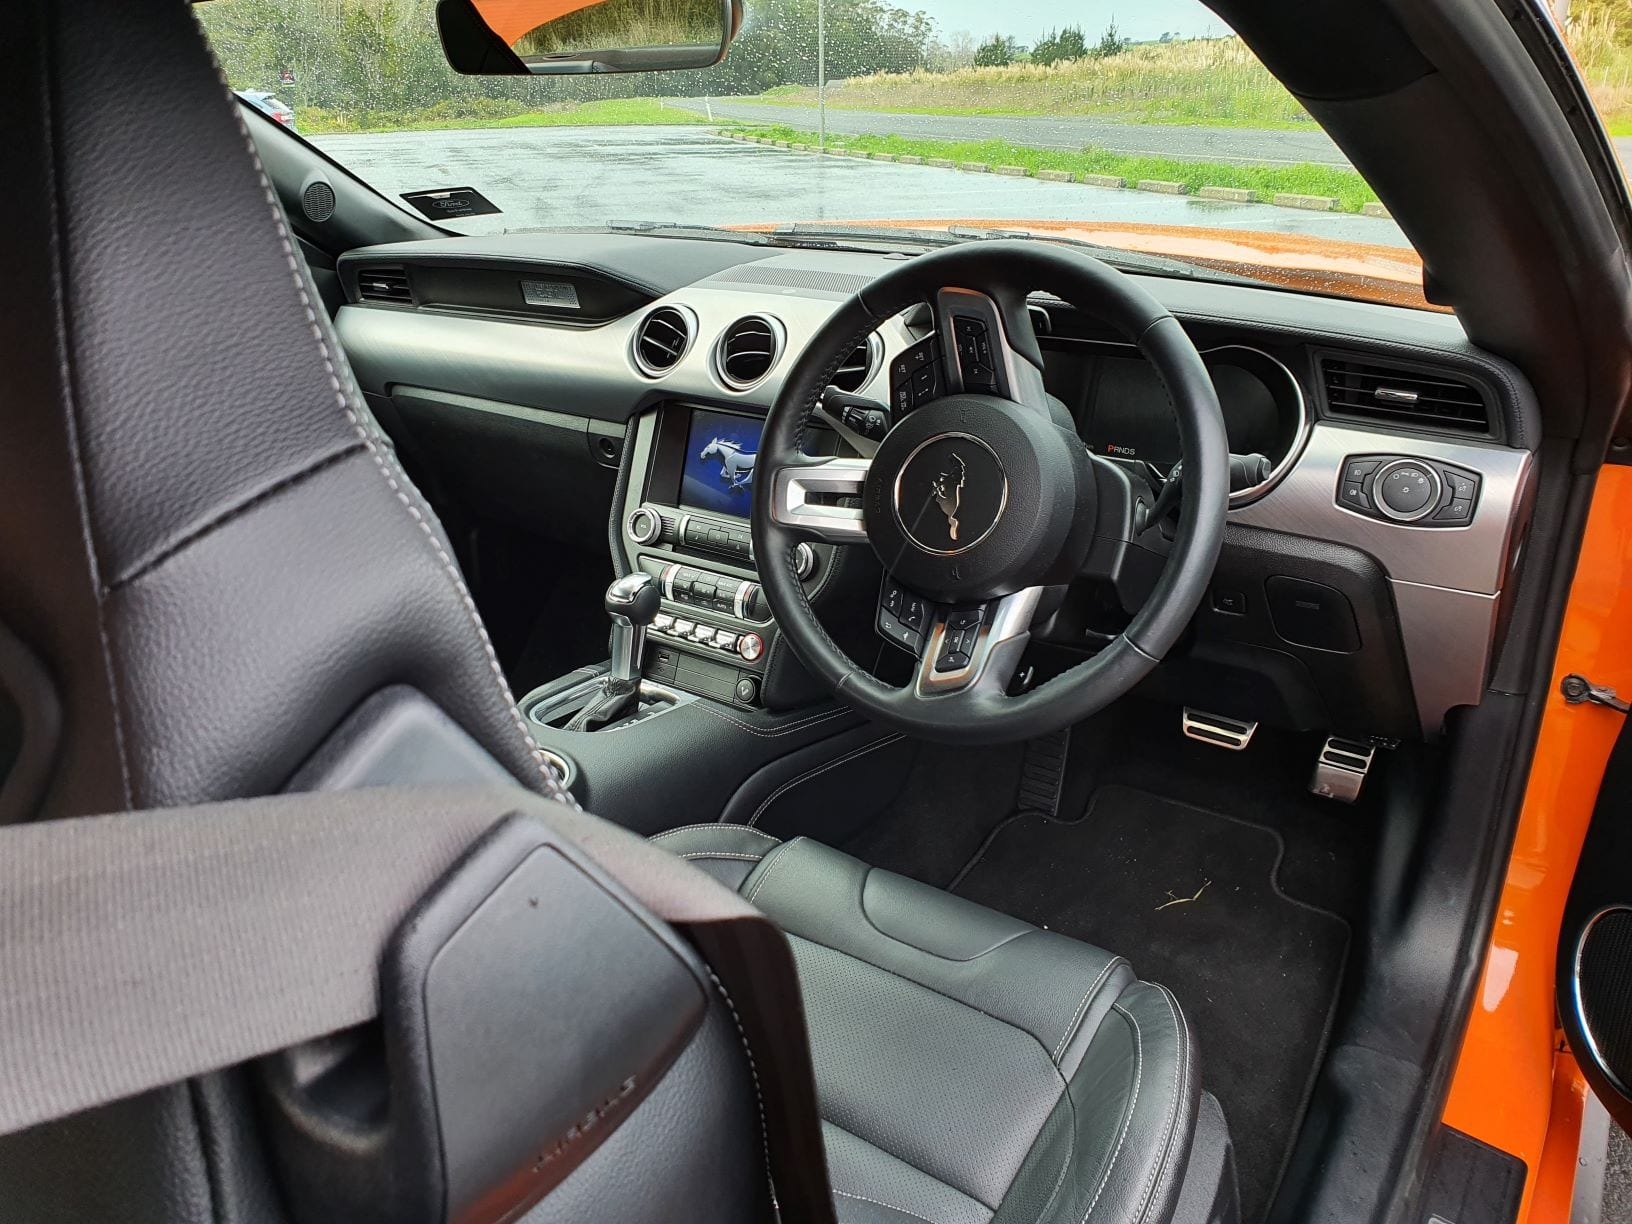 The interior of the Ford Mustang High Performance, an homage to the Mustangs of old.